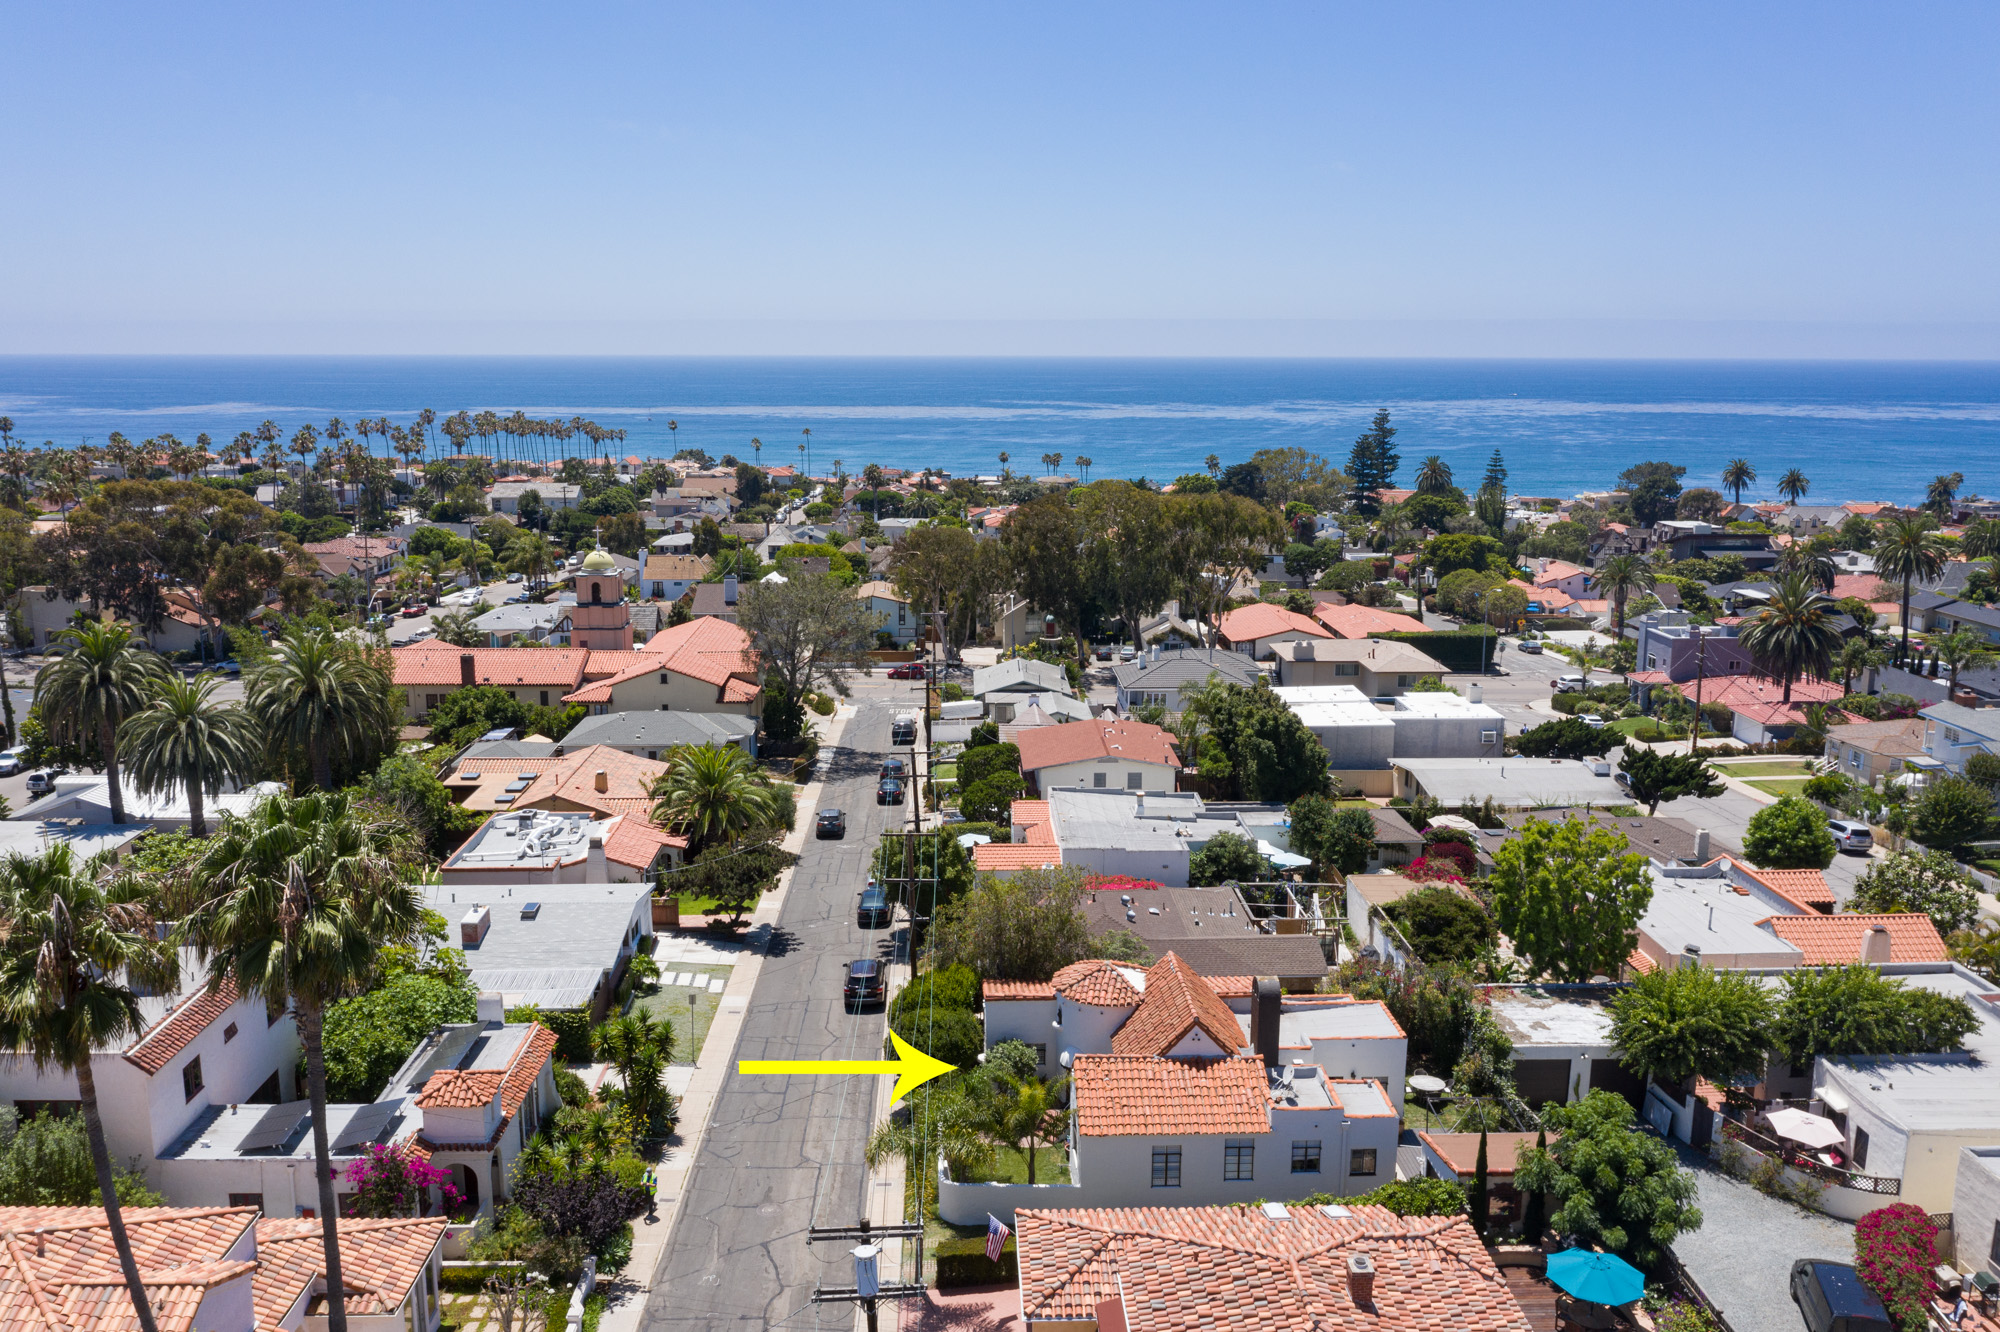 Sold 2019 Laura Represented Seller -  La Jolla, CA 92037